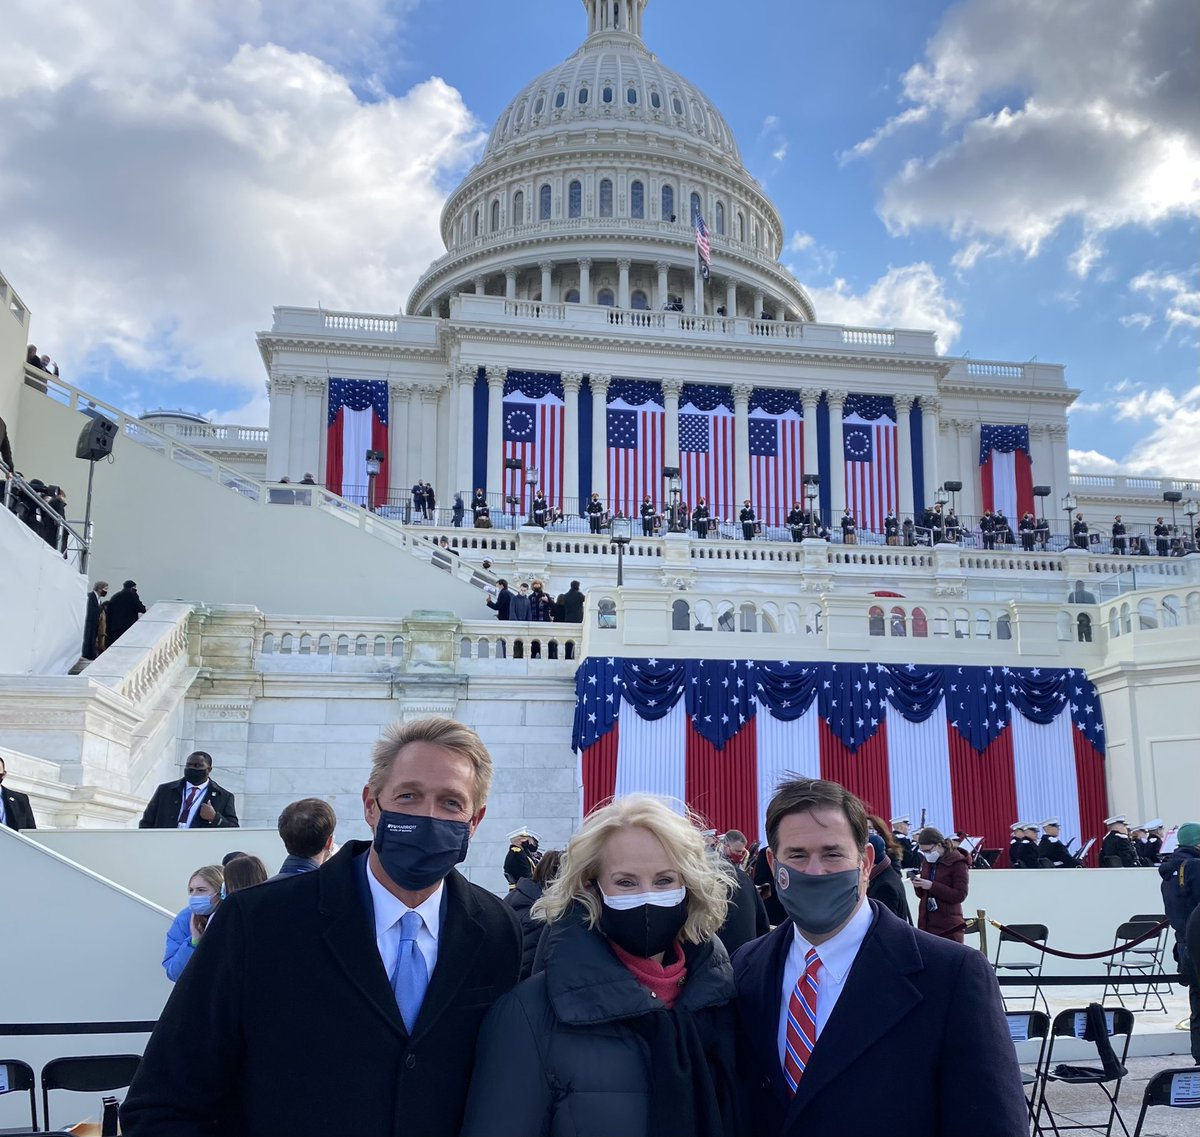 Happy to be in our nation's Capitol today with Arizona Republicans @cindymccain and @dougducey to witness our nation's most important ritual: the peaceful transfer of power